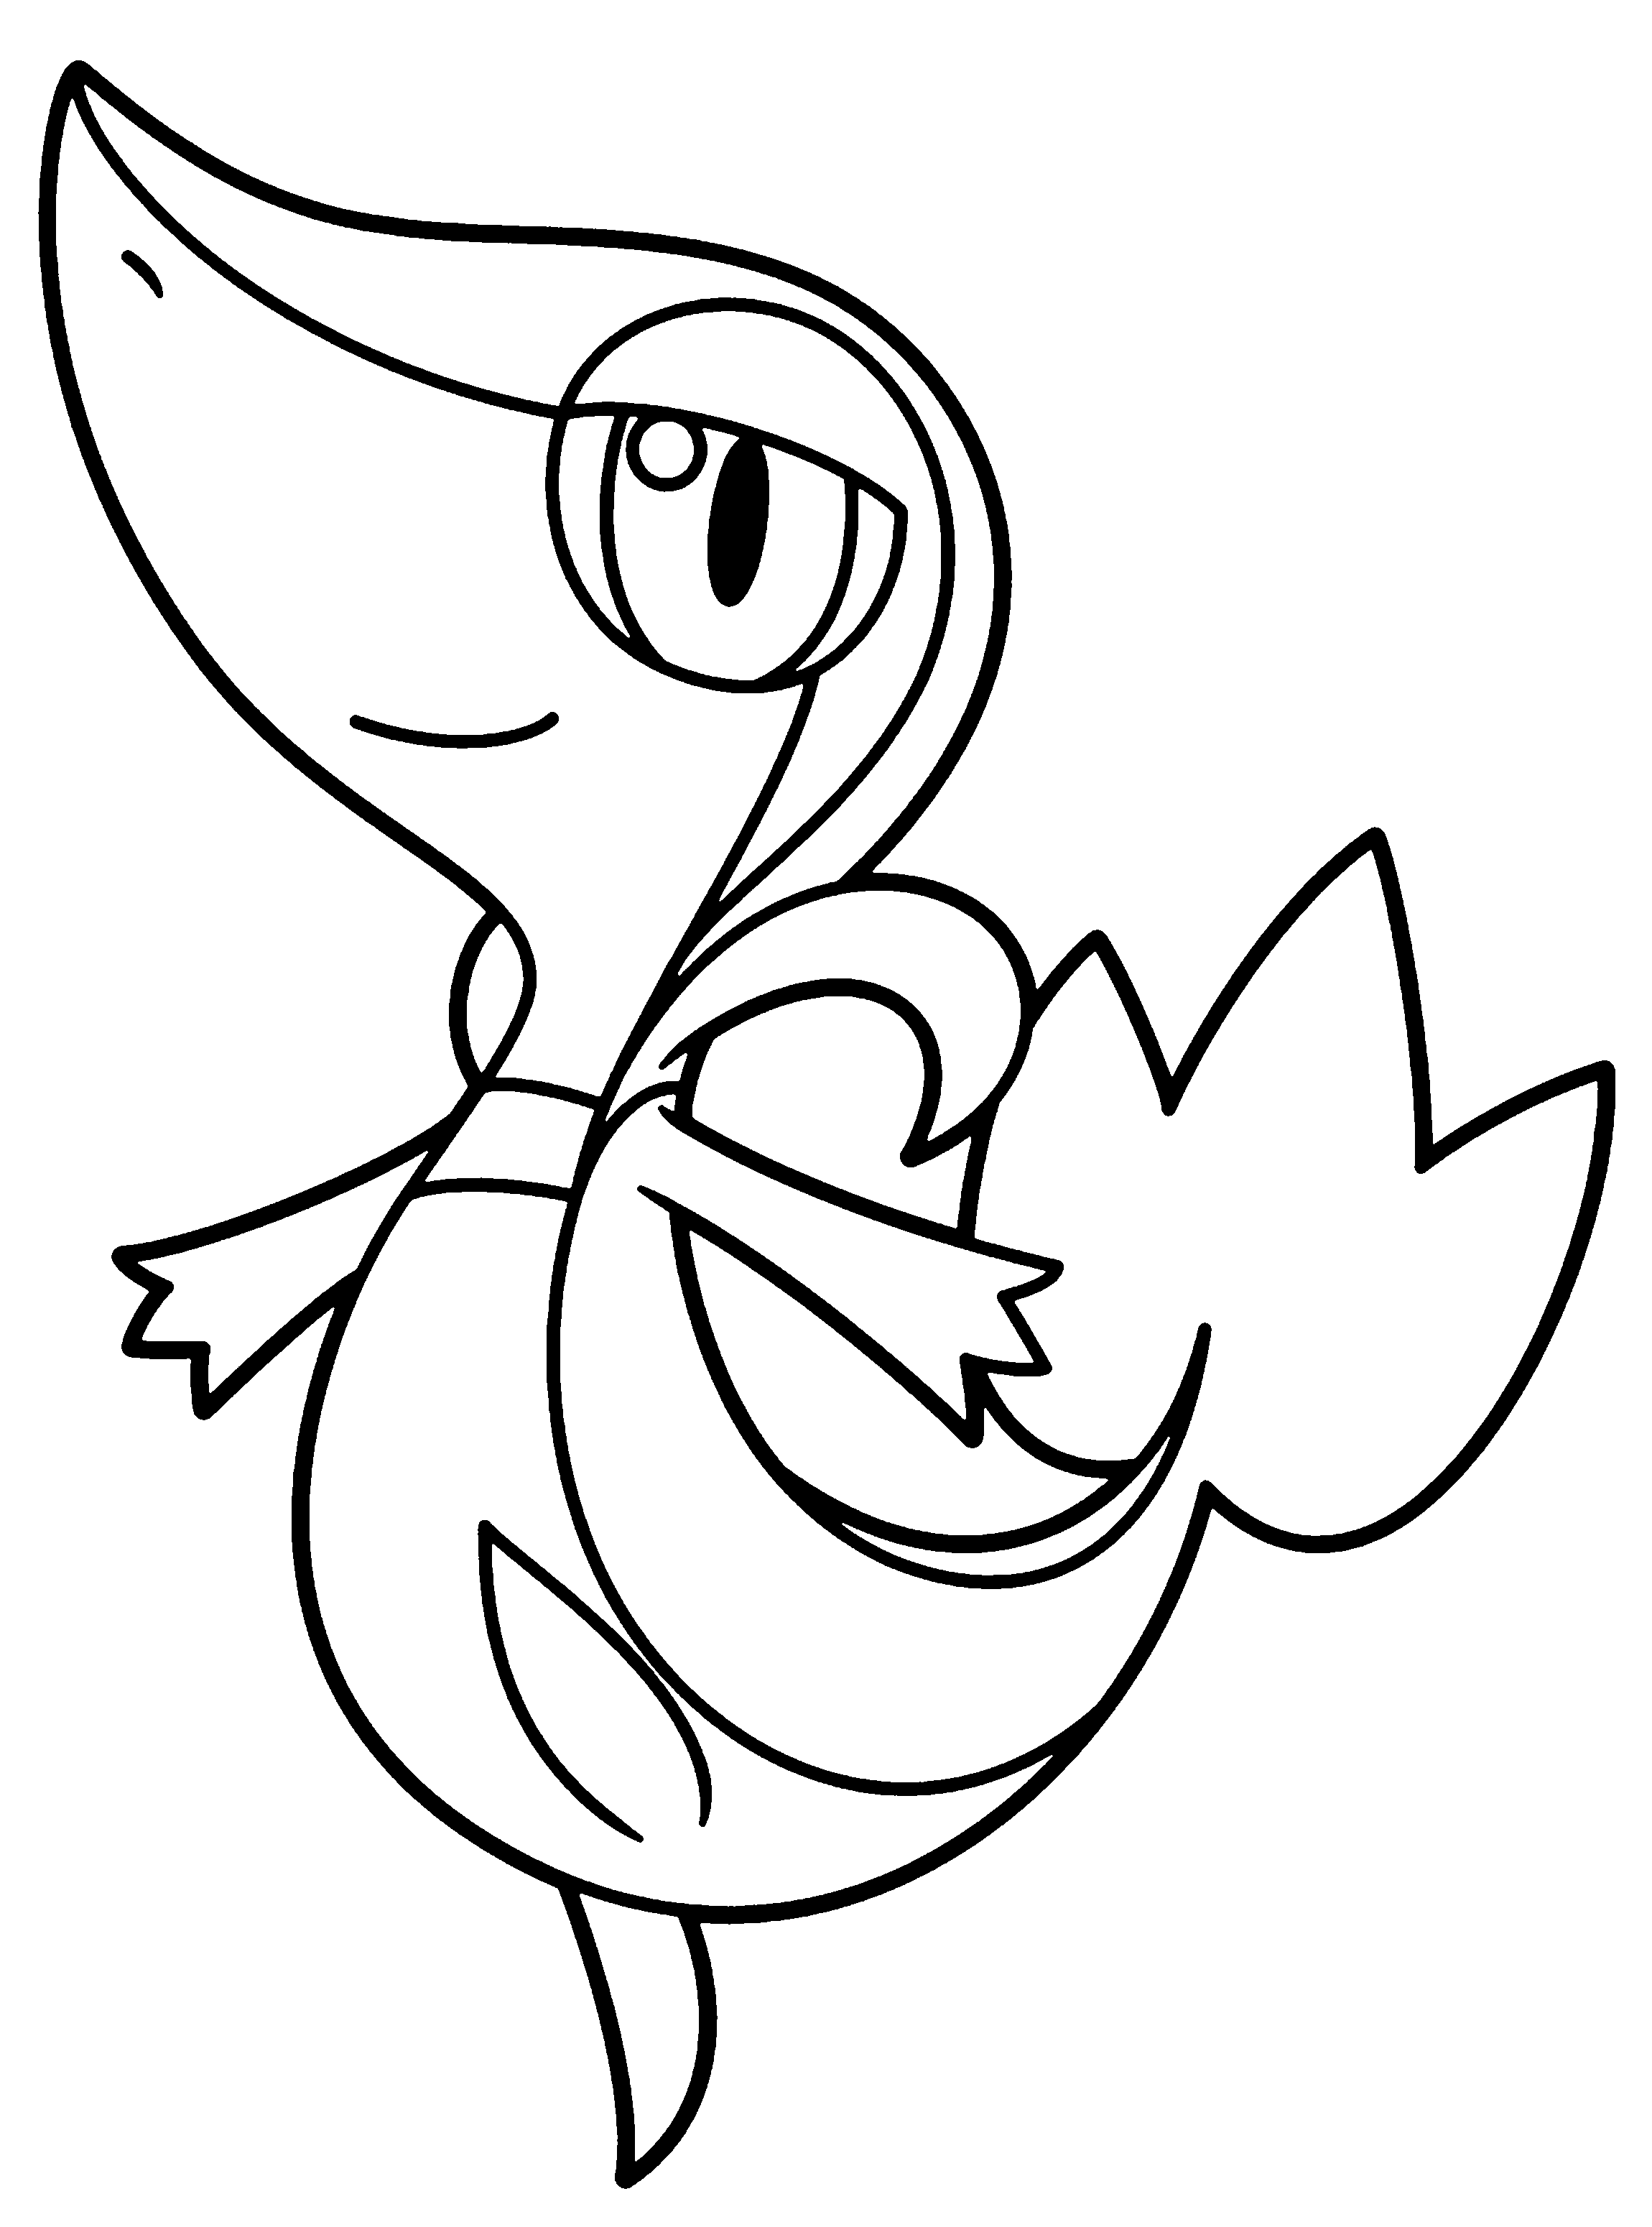 colouring pages pokemon black and white kleurplaat tv series kleurplaat pokemon black animaatjesnl colouring pages pokemon white black and